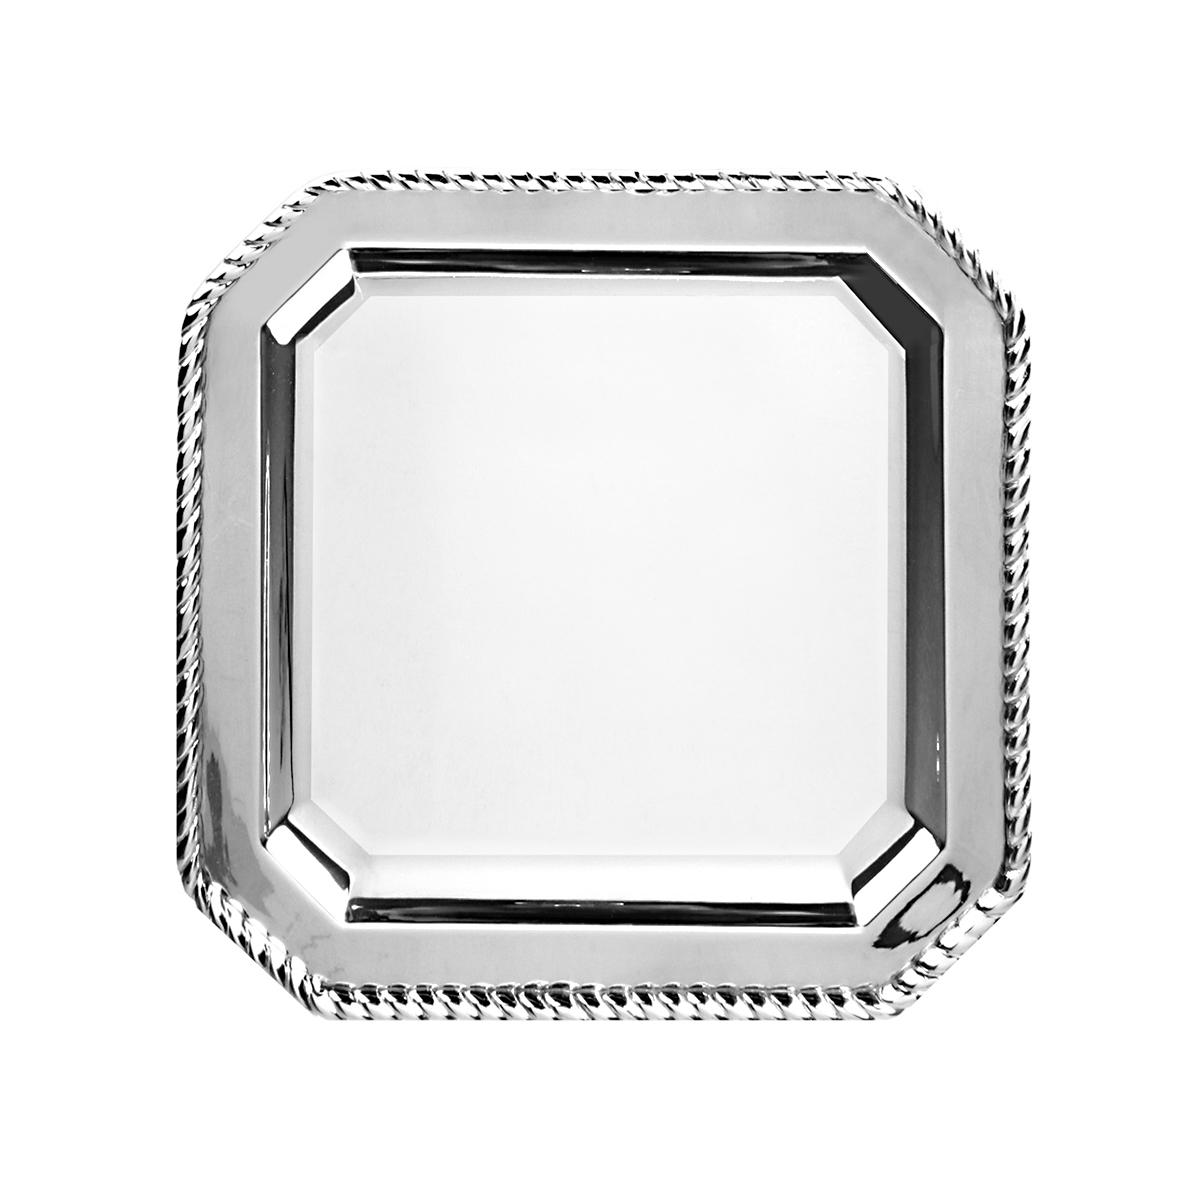 10-Inch Square Tray in Rope